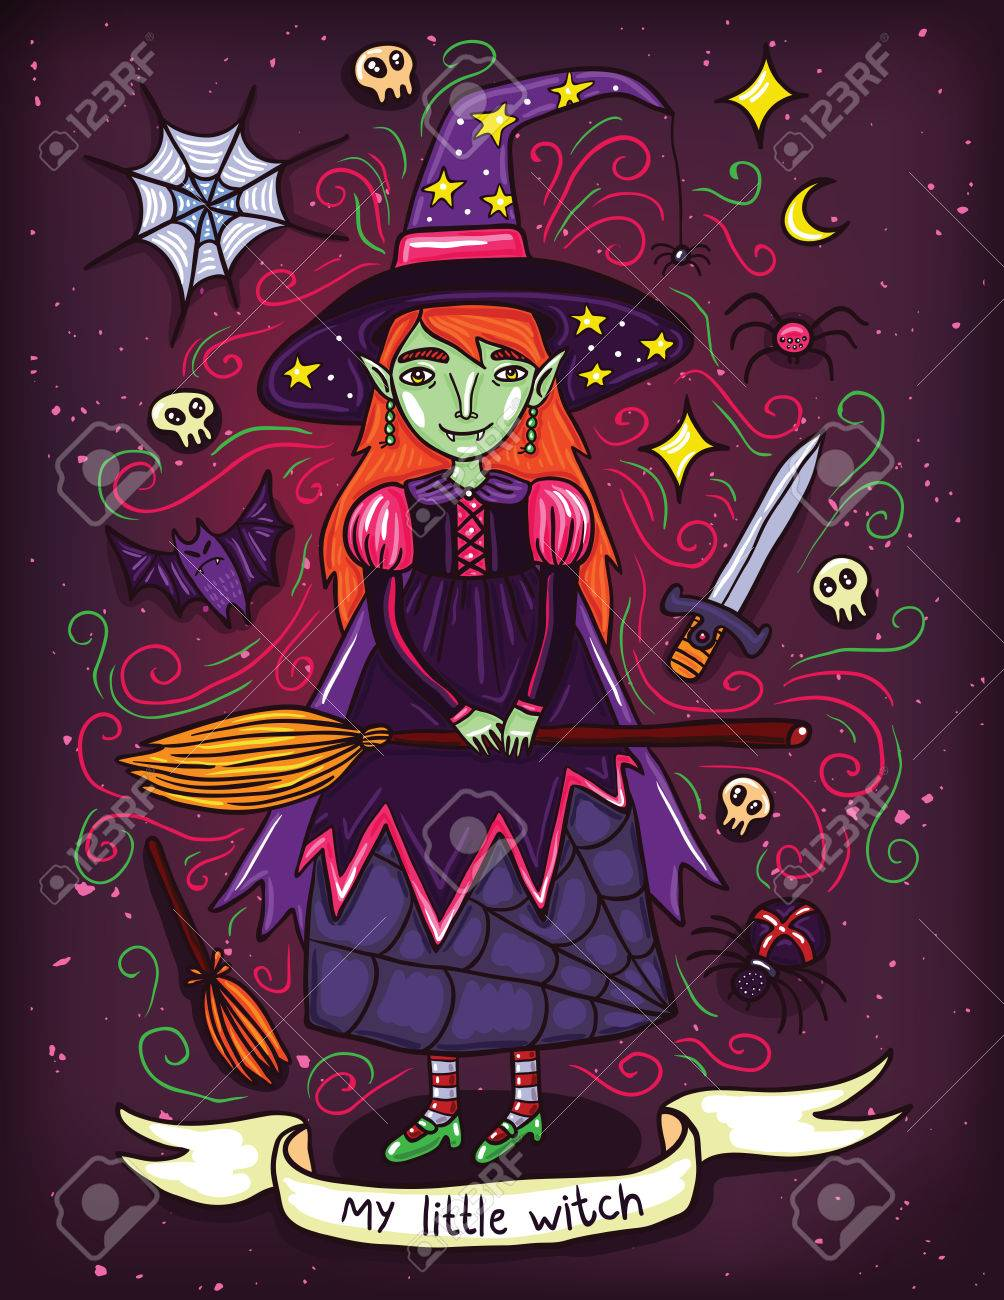 Cute little witch in purple dress. Illustration about witches holidays of or Helloween. Witchcraft everywhere. - 57607370